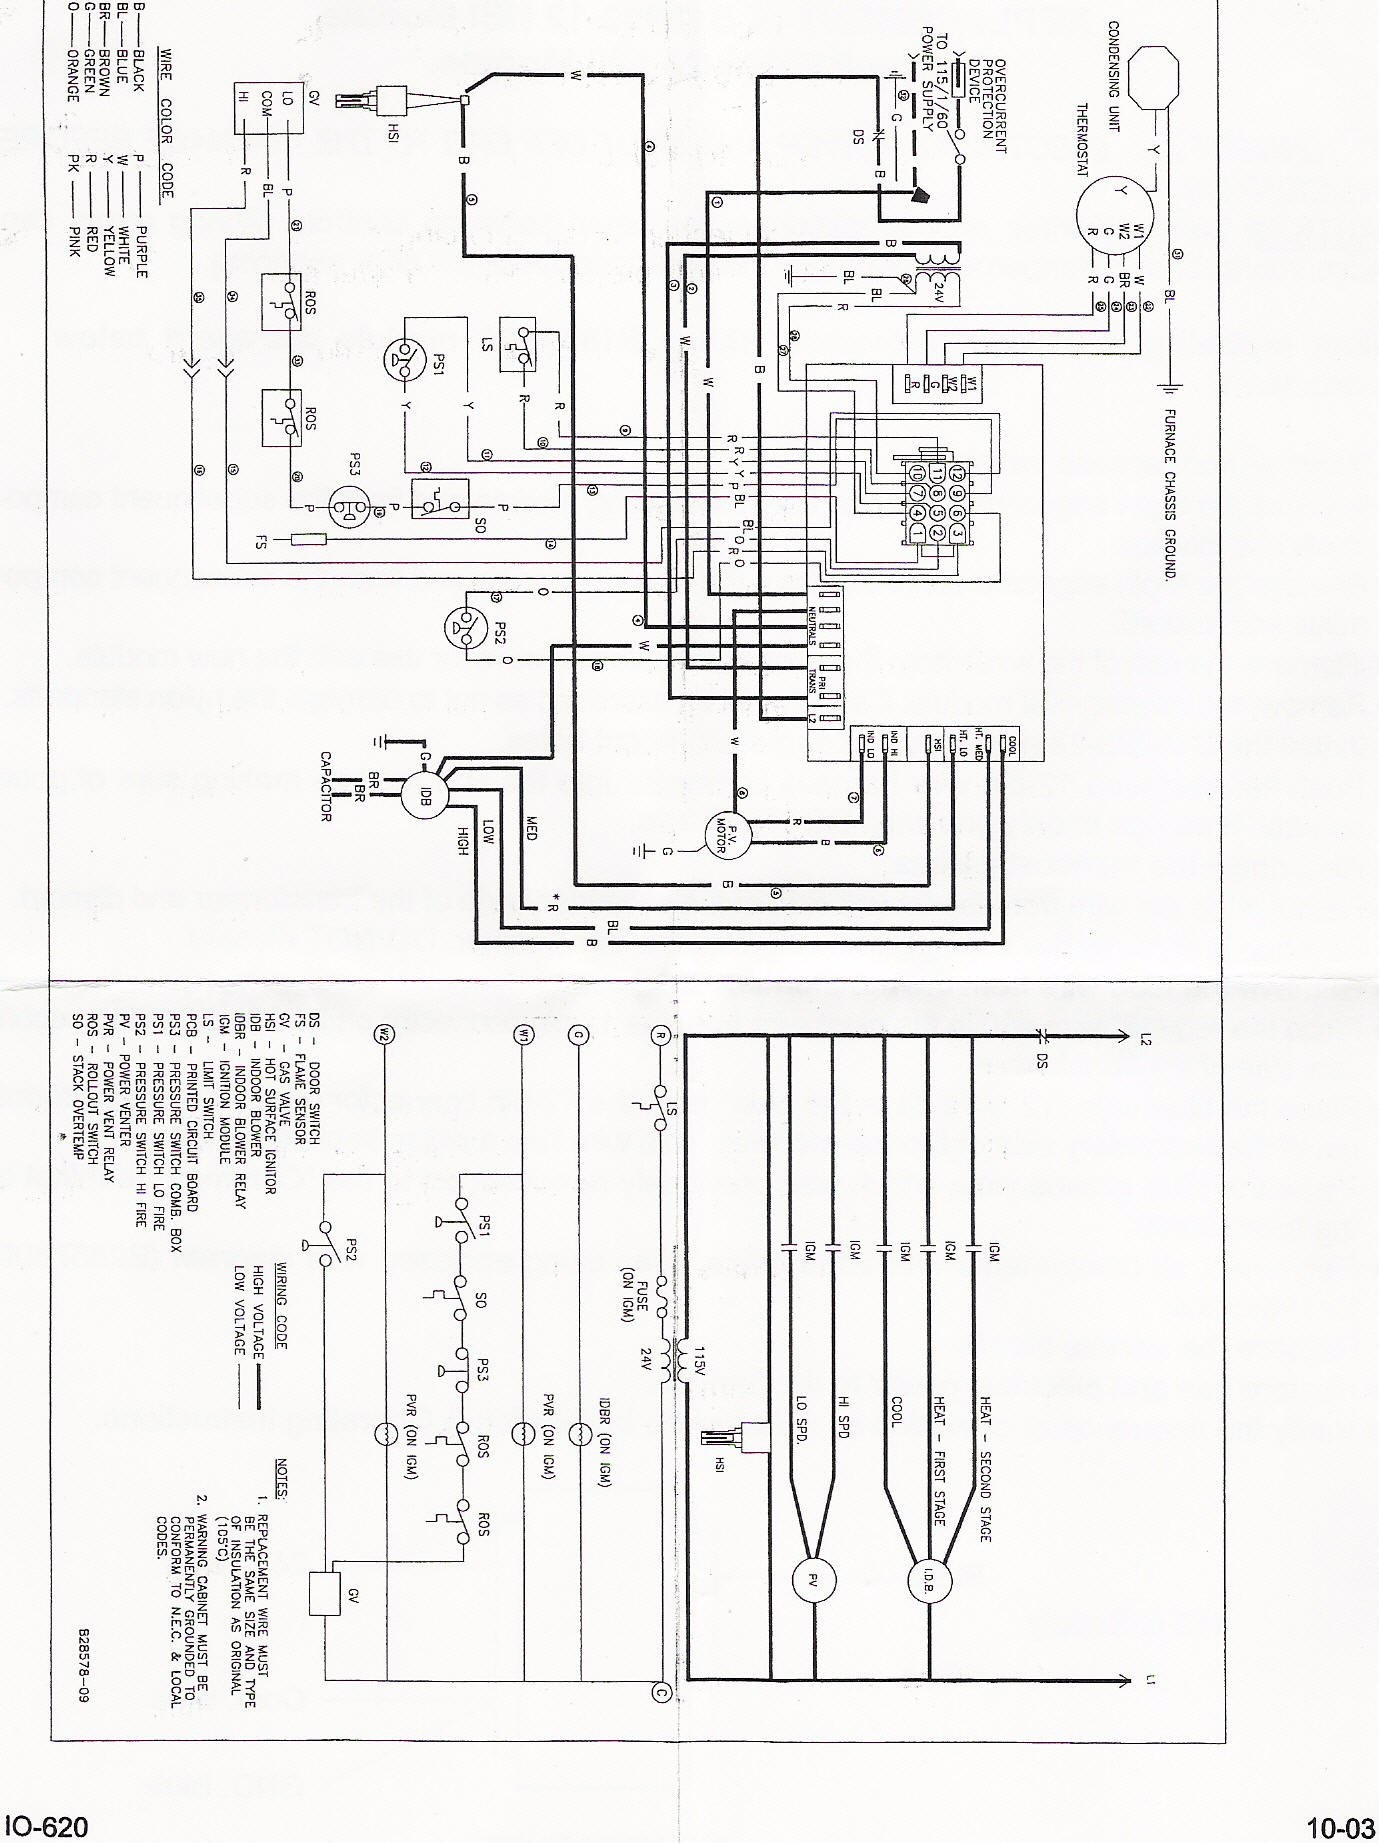 condenser fan wiring diagram 4 wire or 5 wire goodman condenser fan wiring diagram goodman defrost board wiring diagram | free wiring diagram